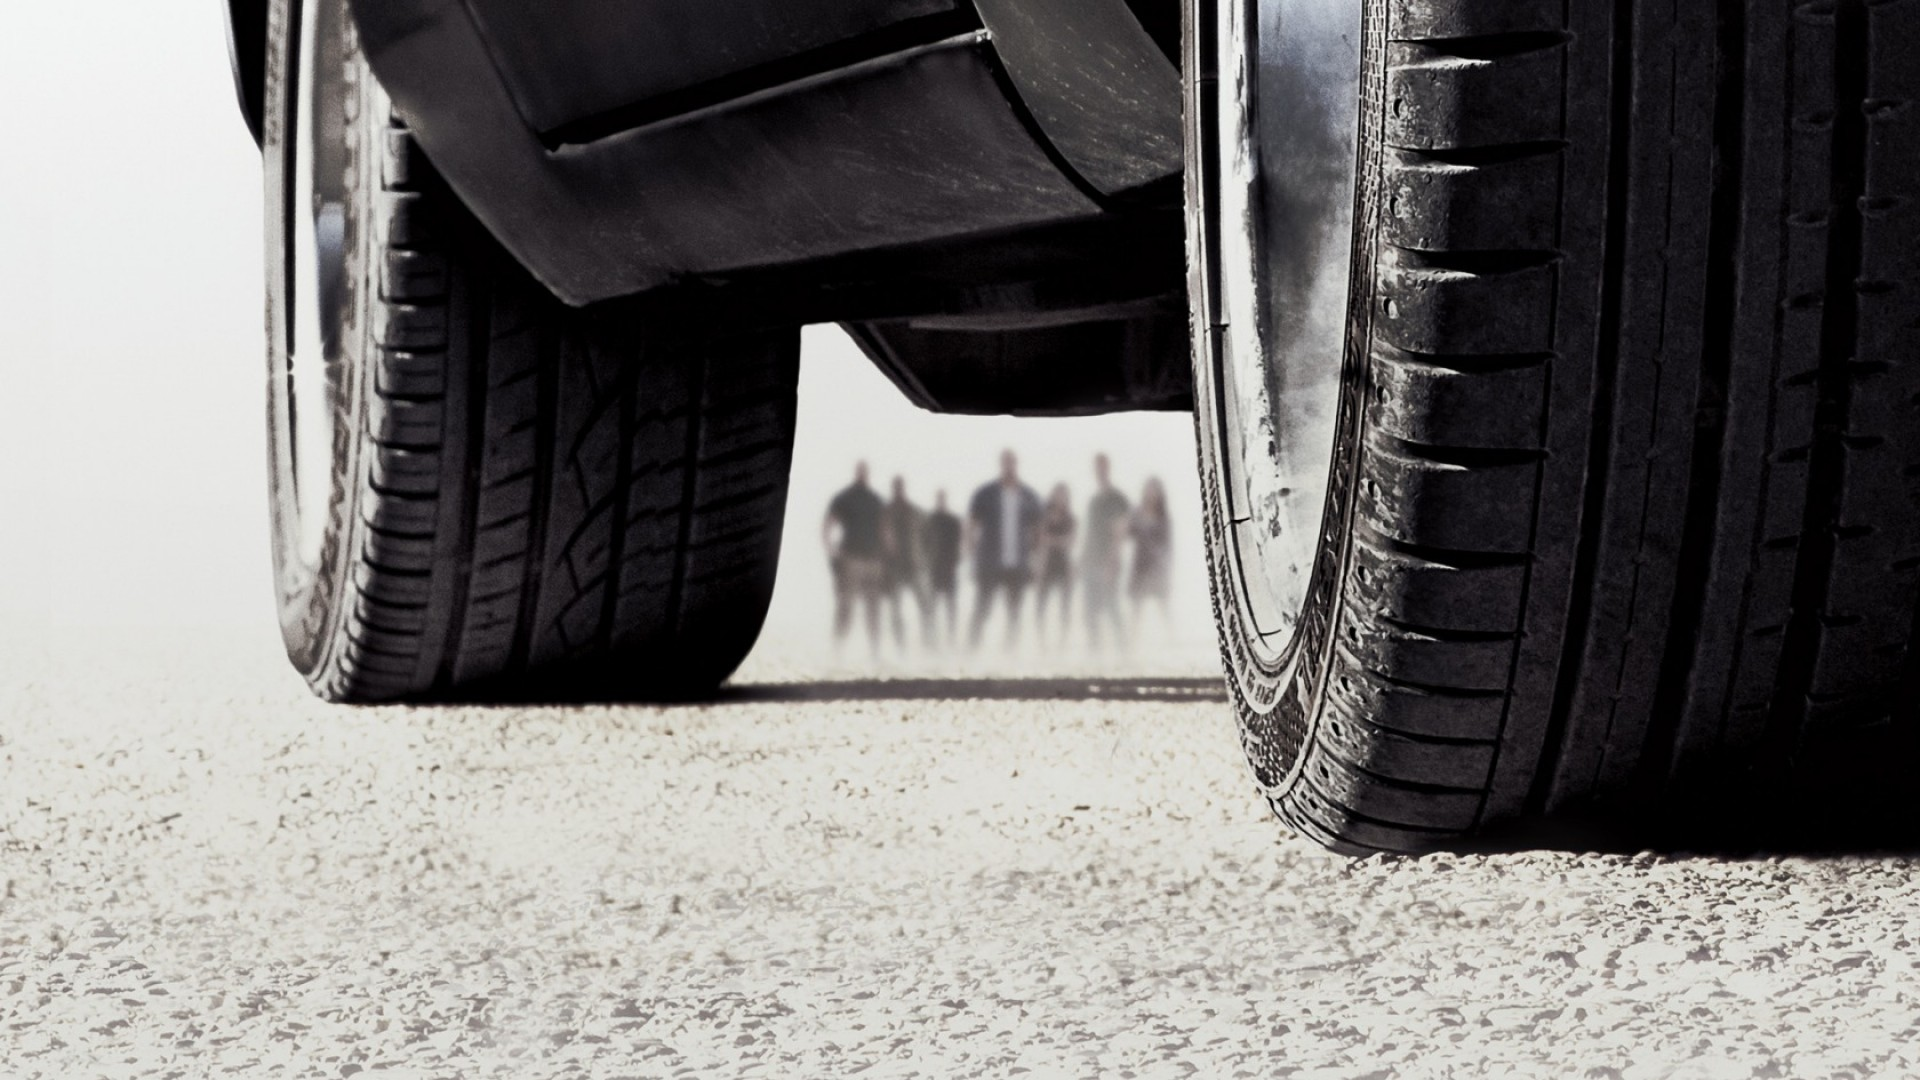 Preview wallpaper fast and furious, furious 7, car, tire 1920×1080